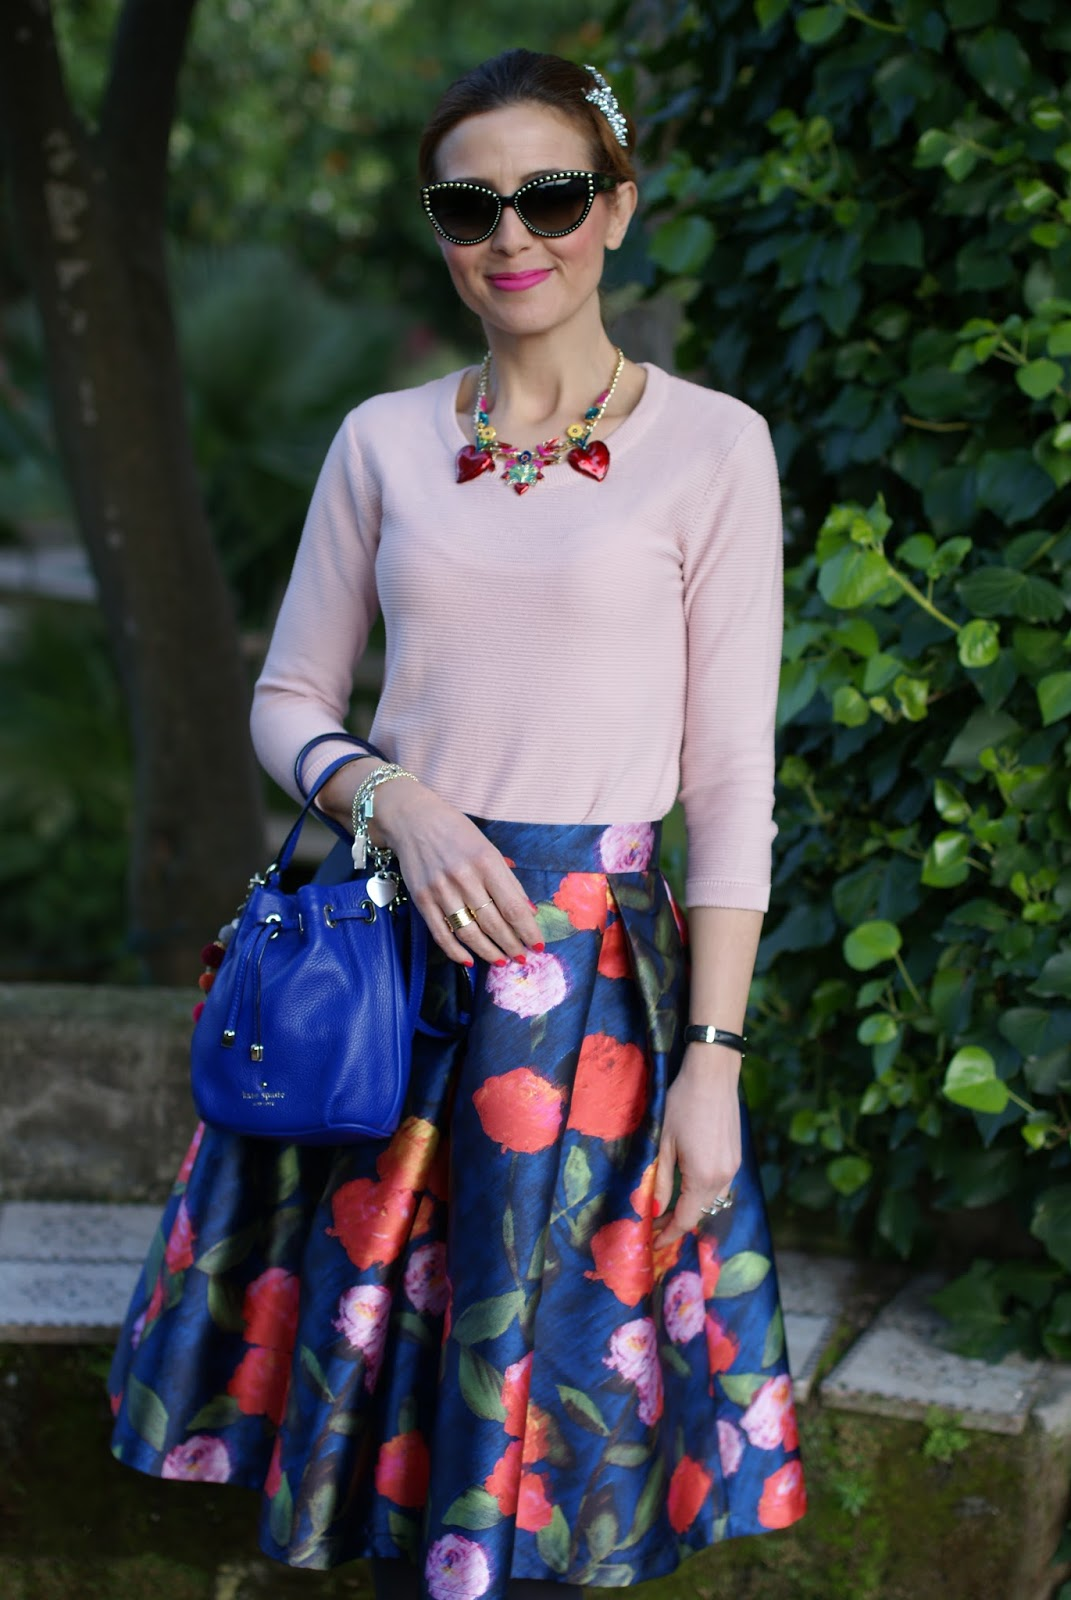 Paccio floral midi skirt, Tommaso Lonardo necklace and Kate Spade bucket bag on Fashion and Cookies fashion blog, fashion blogger style